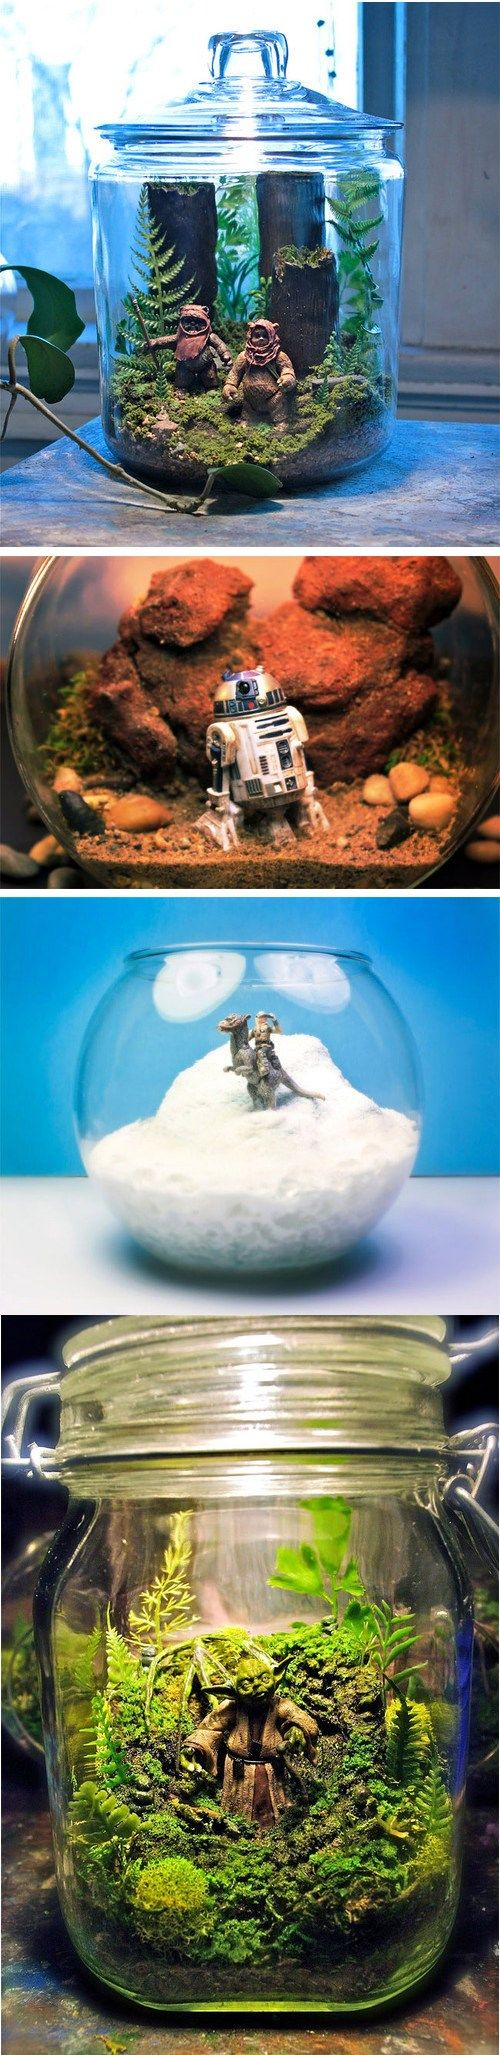 Awesome Star Wars Terrariums Are And For Sale Neeeeed Circuit Board Picture Frames Clock These A Geeky Terrariumsand I Shall Be Doing With My Little Loving Daughters